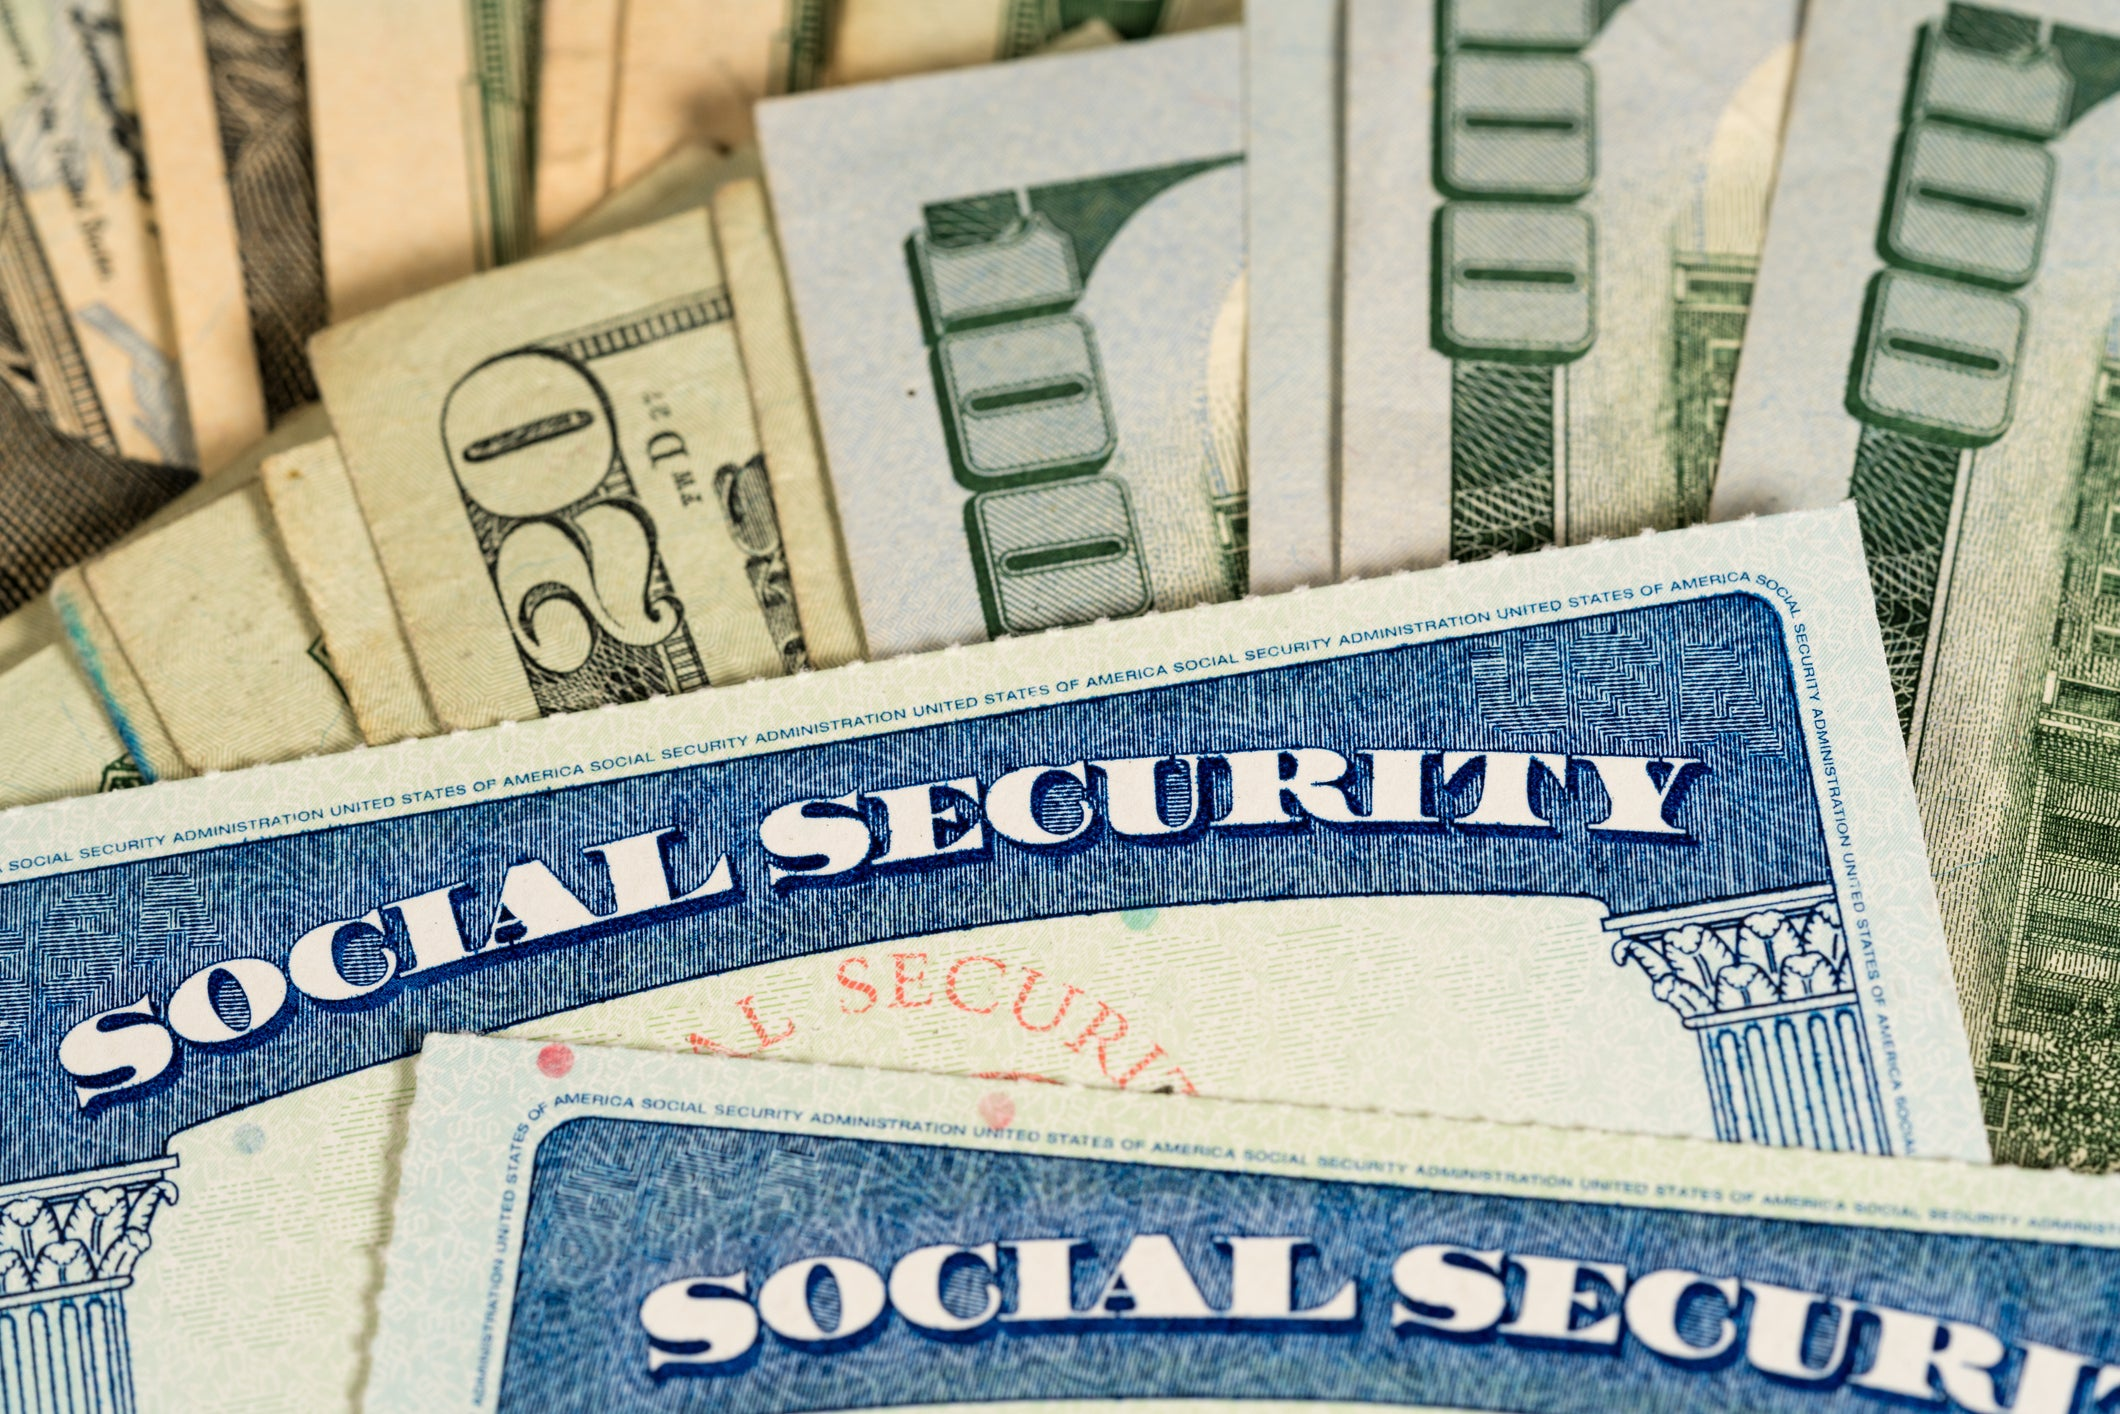 How Much of My Former Income Will Social Security Replace? | The Motley Fool